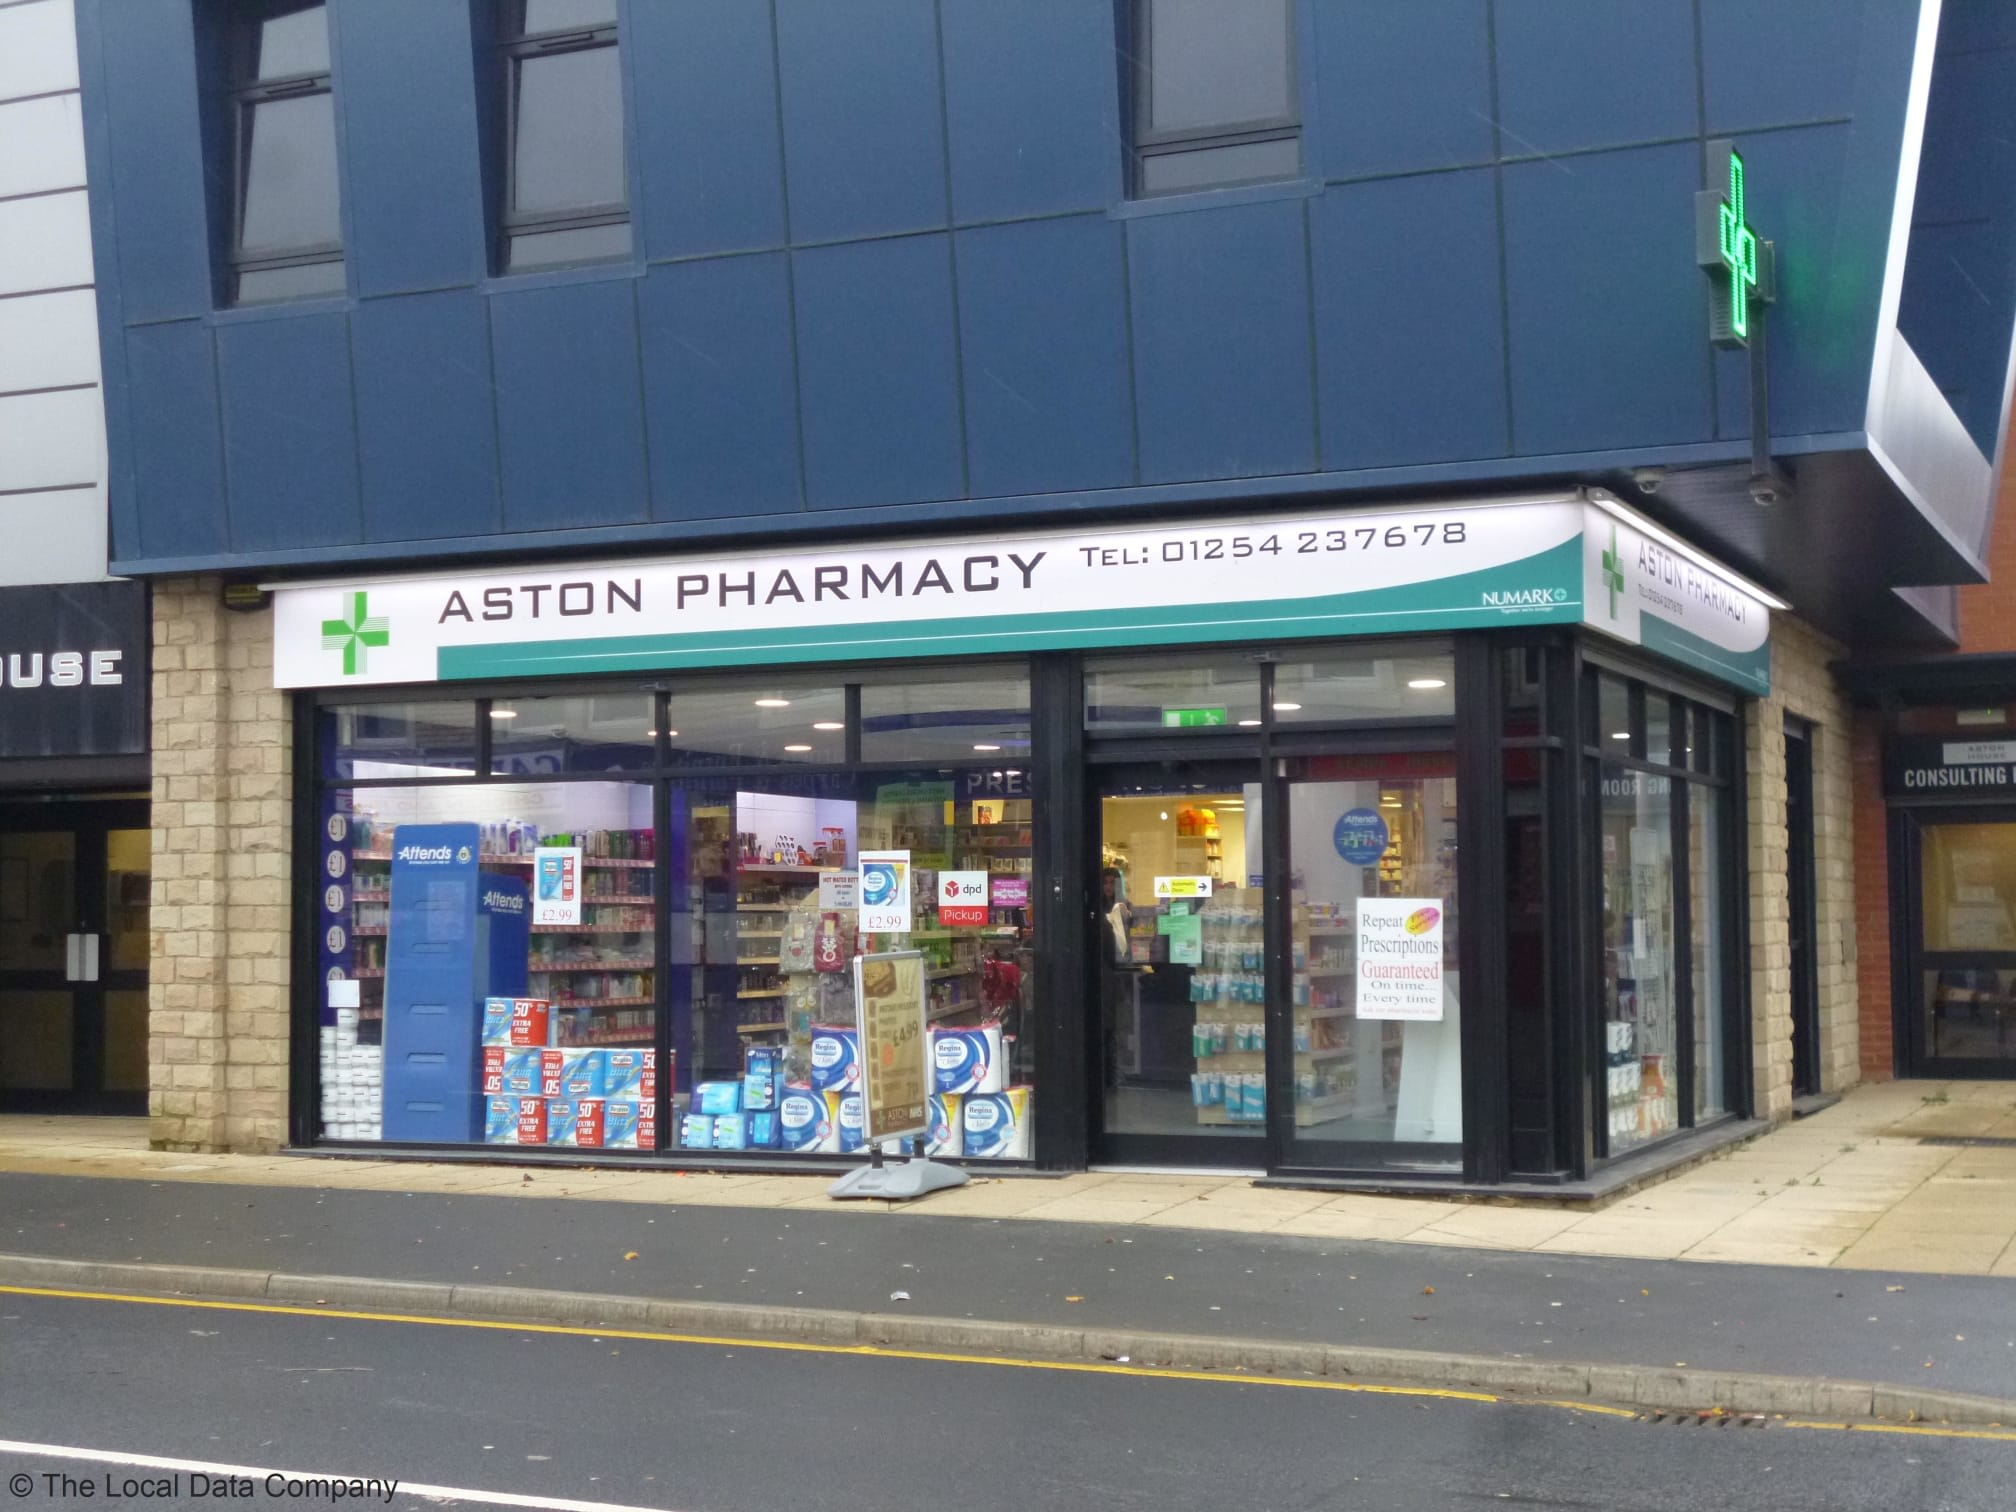 Complementary Therapies by Suzanne at Aston Pharmacy | 391 Blackburn Rd, Accrington BB5 1RP | +44 1254 237678